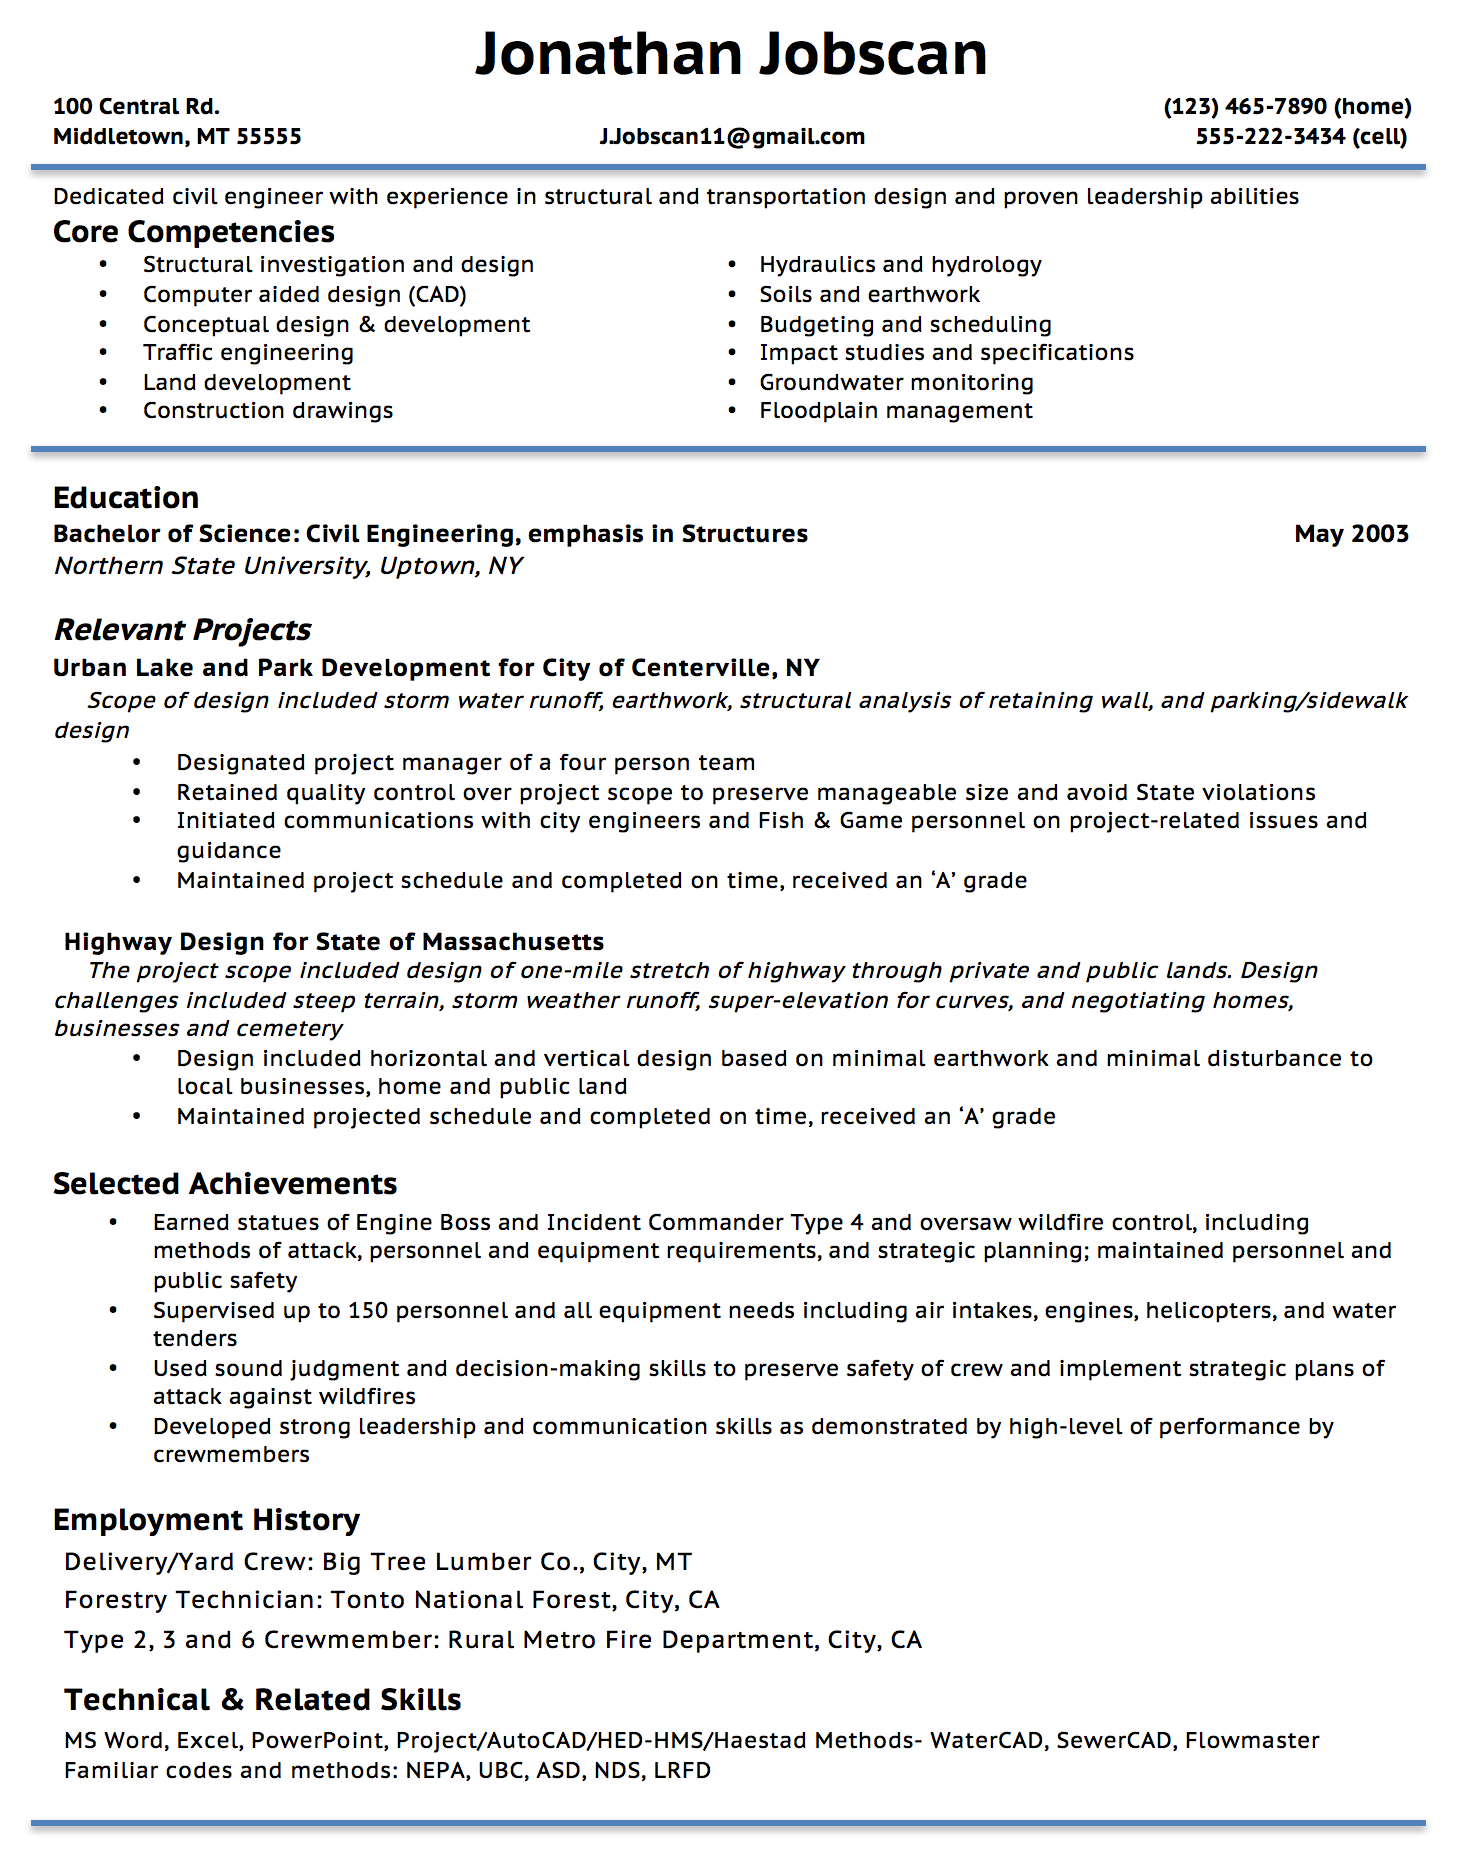 Picnictoimpeachus  Ravishing Resume Writing Guide  Jobscan With Extraordinary Example Of A Functional Resume Format With Alluring Best Site To Post Resume Also Business Resume Example In Addition Examples Of Good Resume And Excellent Customer Service Skills Resume As Well As Acting Resume With No Experience Additionally How To Do Your Resume From Jobscanco With Picnictoimpeachus  Extraordinary Resume Writing Guide  Jobscan With Alluring Example Of A Functional Resume Format And Ravishing Best Site To Post Resume Also Business Resume Example In Addition Examples Of Good Resume From Jobscanco